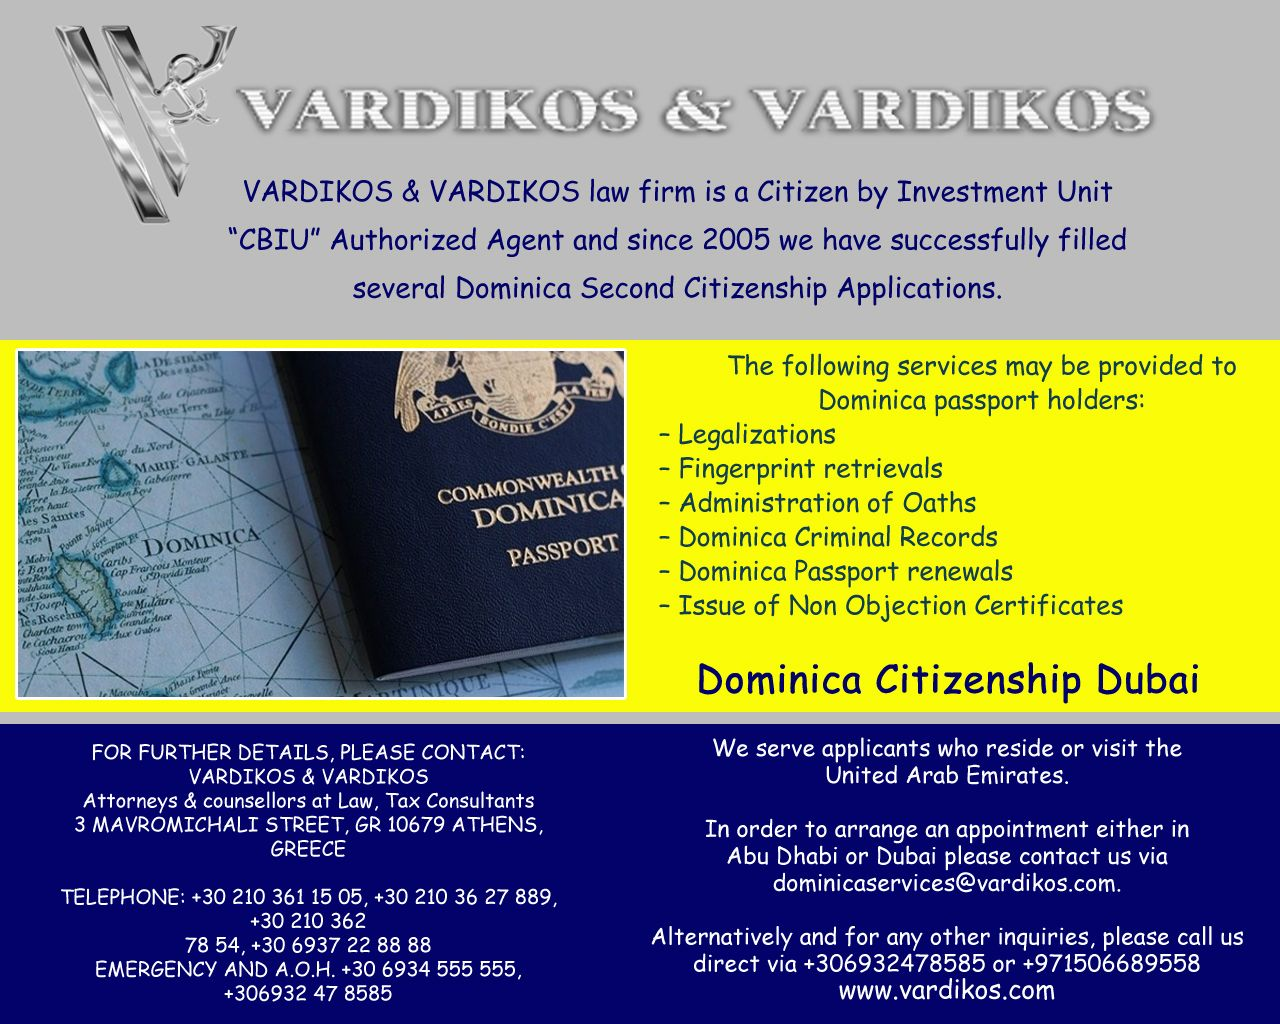 d8f8b6240e814e274bc2705e82d8ab92 - How Long It Takes To Get Fingerprint Appointment For Citizenship